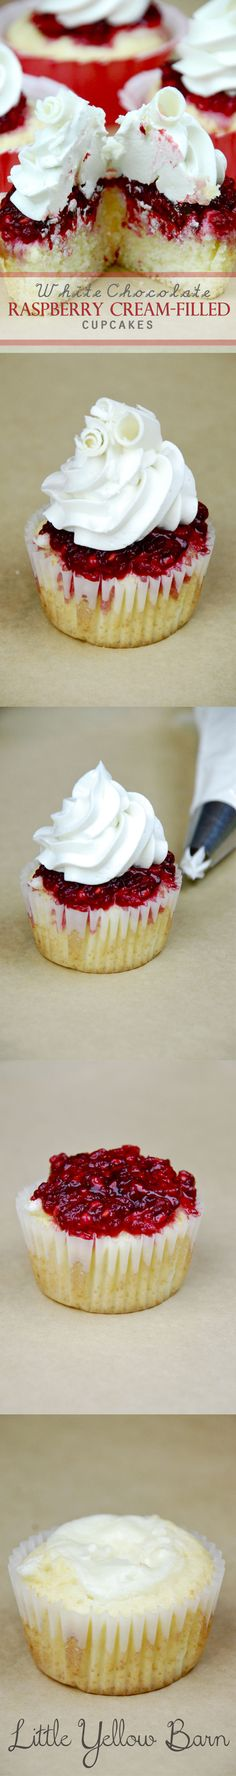 Vanilla cupcake, cream cheese filling, raspberry and white chocolate buttercream topping.  .